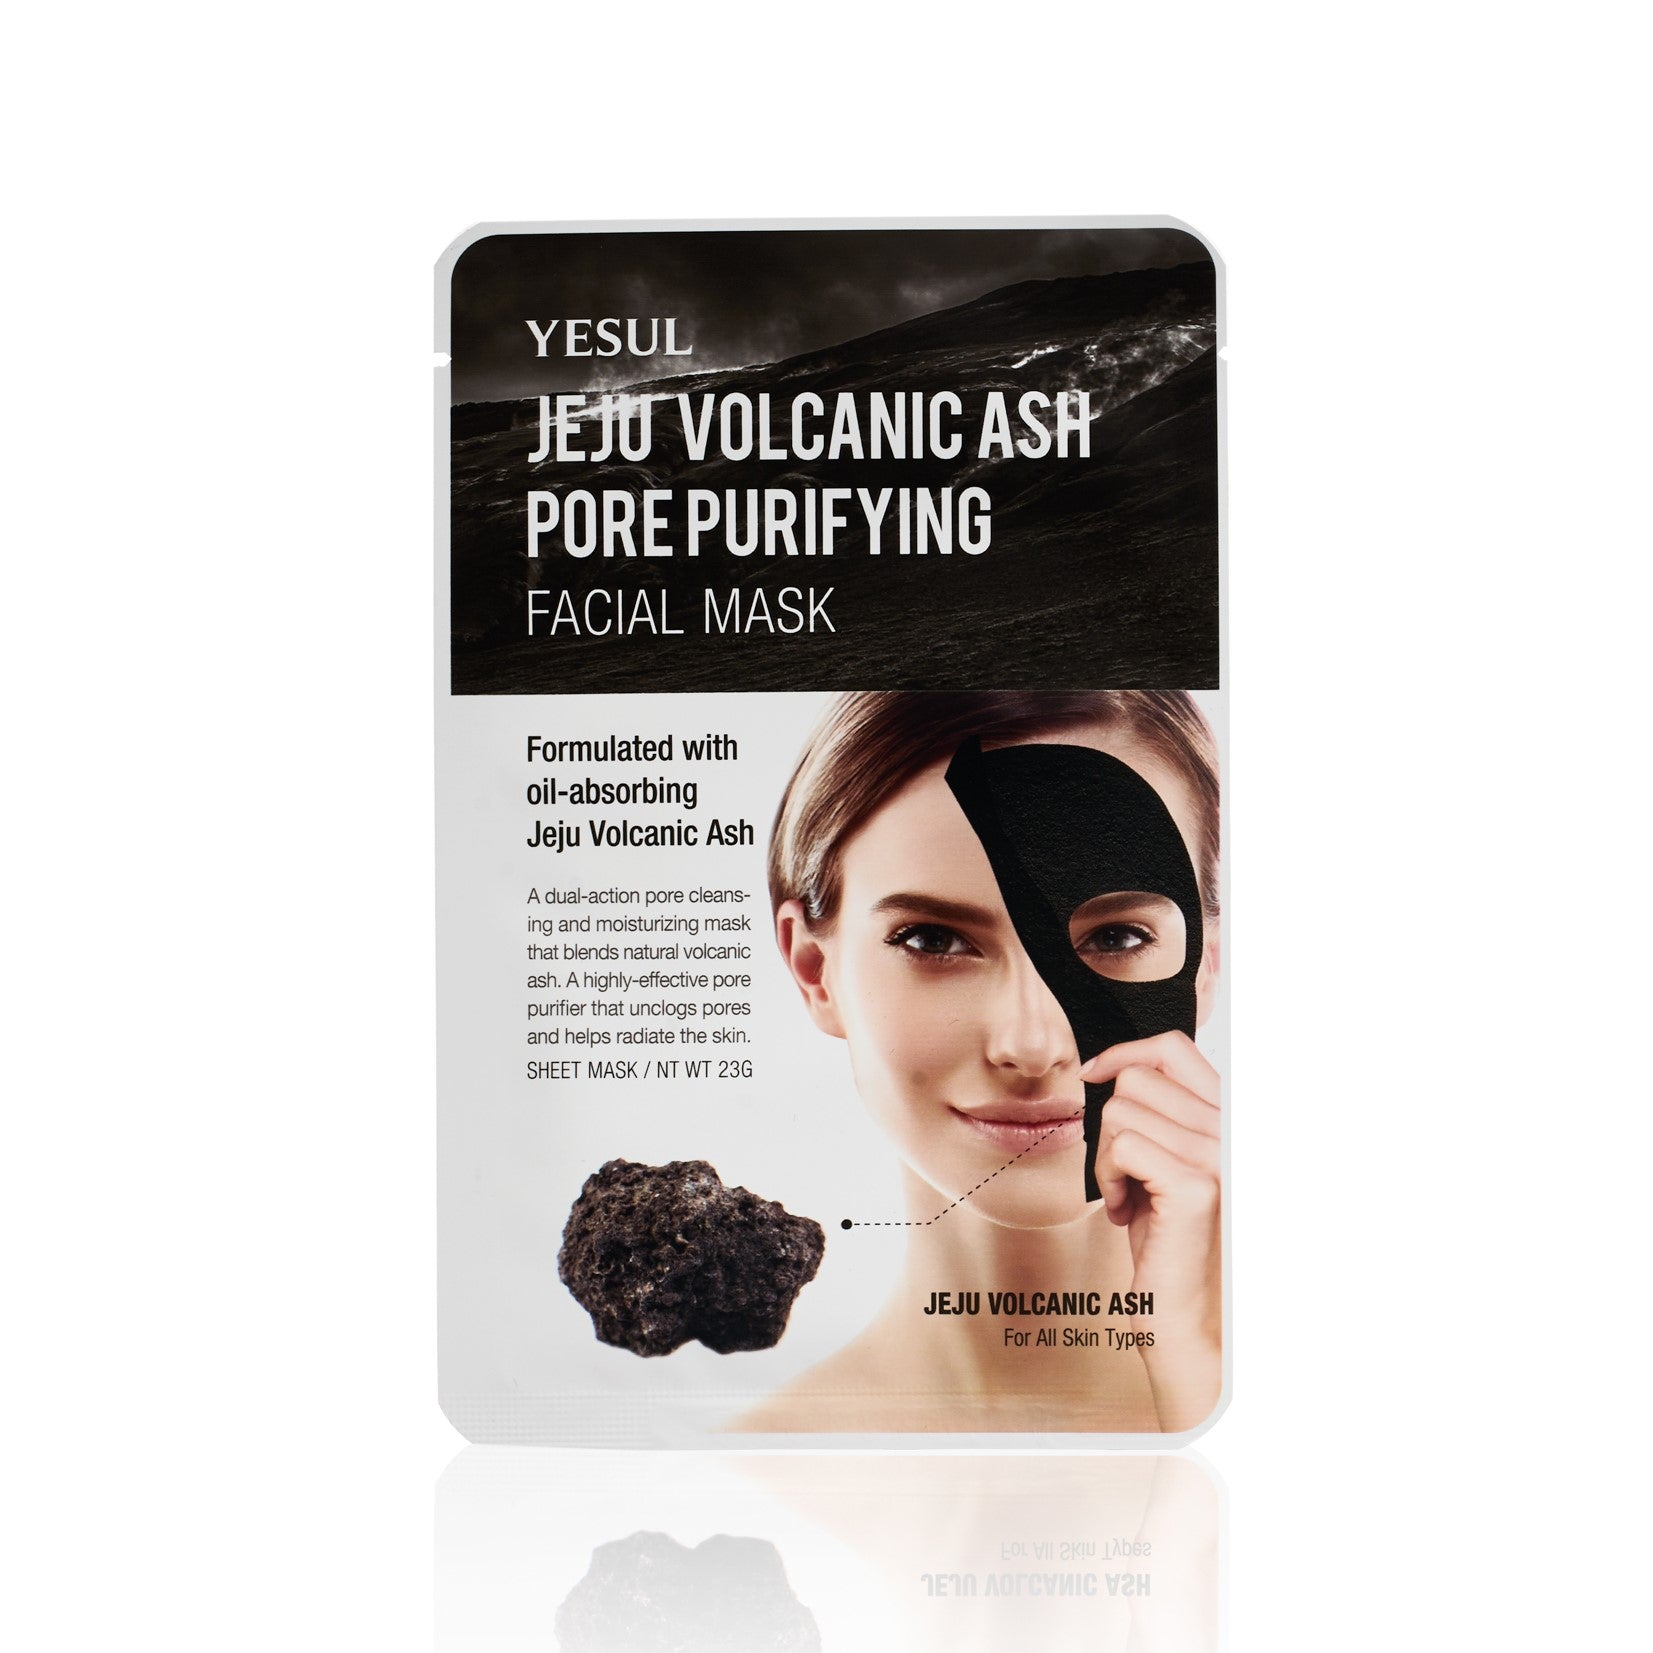 YESUL Jeju Volcanic Ash Pore Purifying Sheet Mask